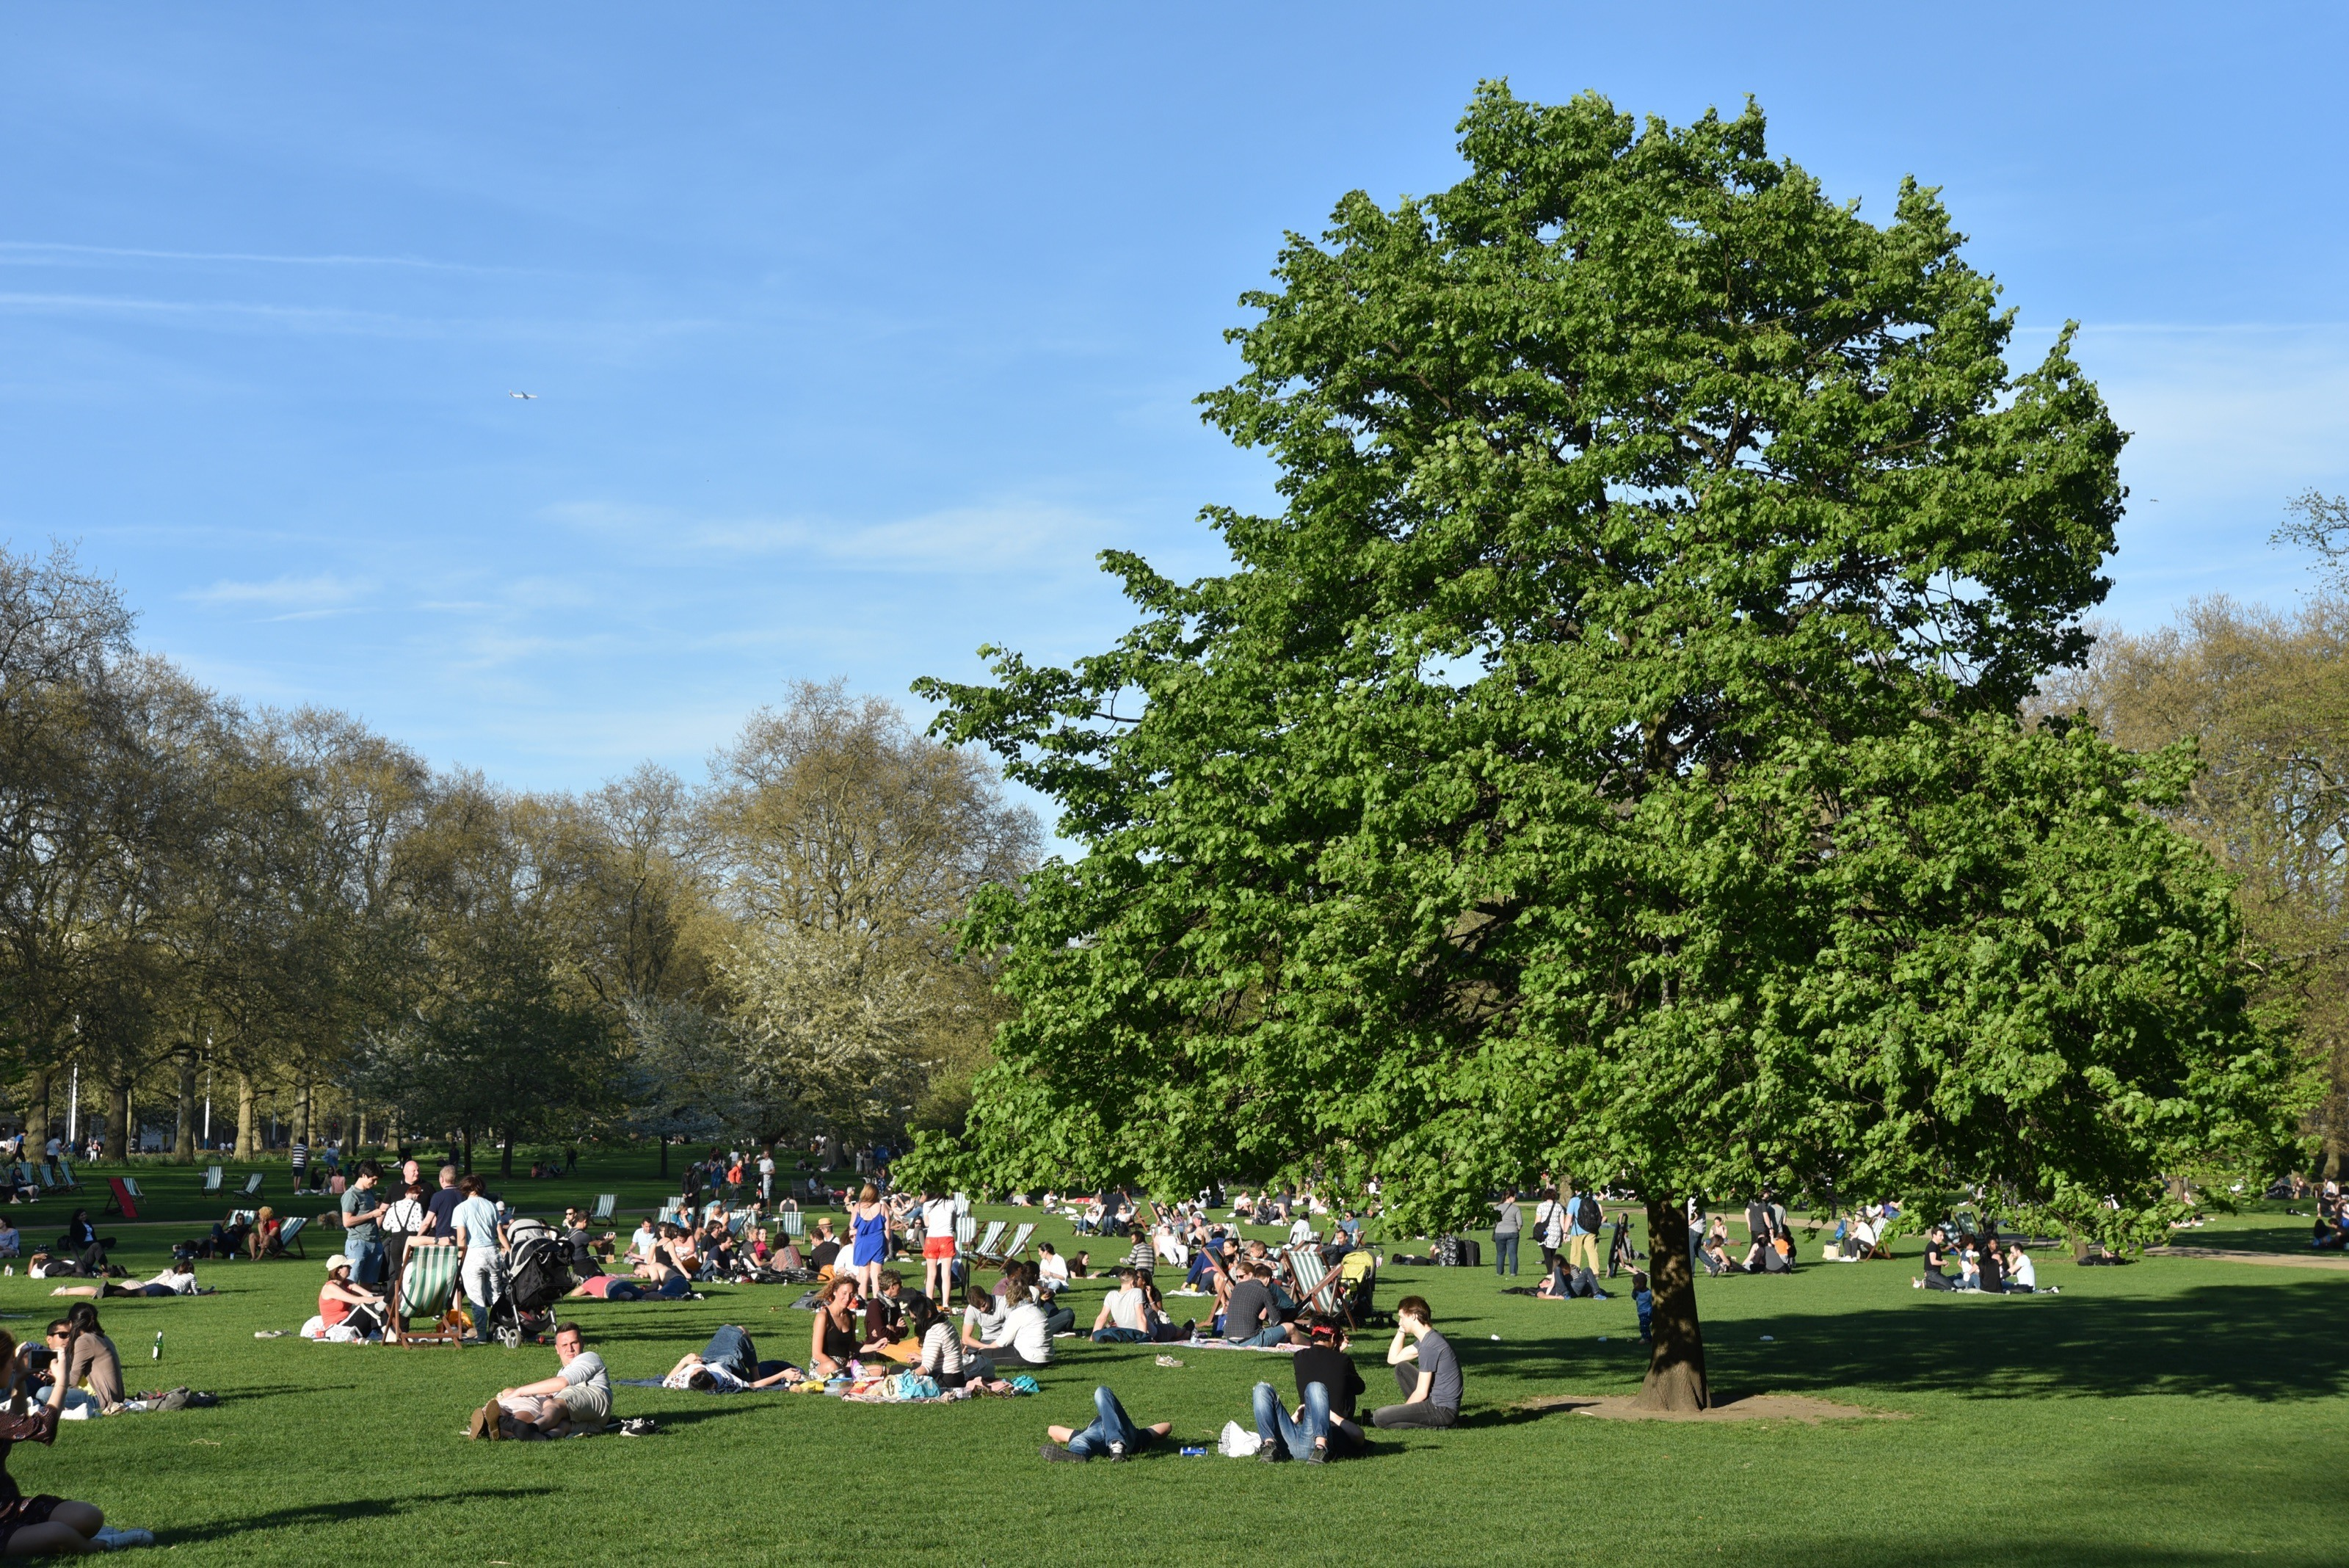 United Kingdom will be warmer than Majorca for holiday weekend